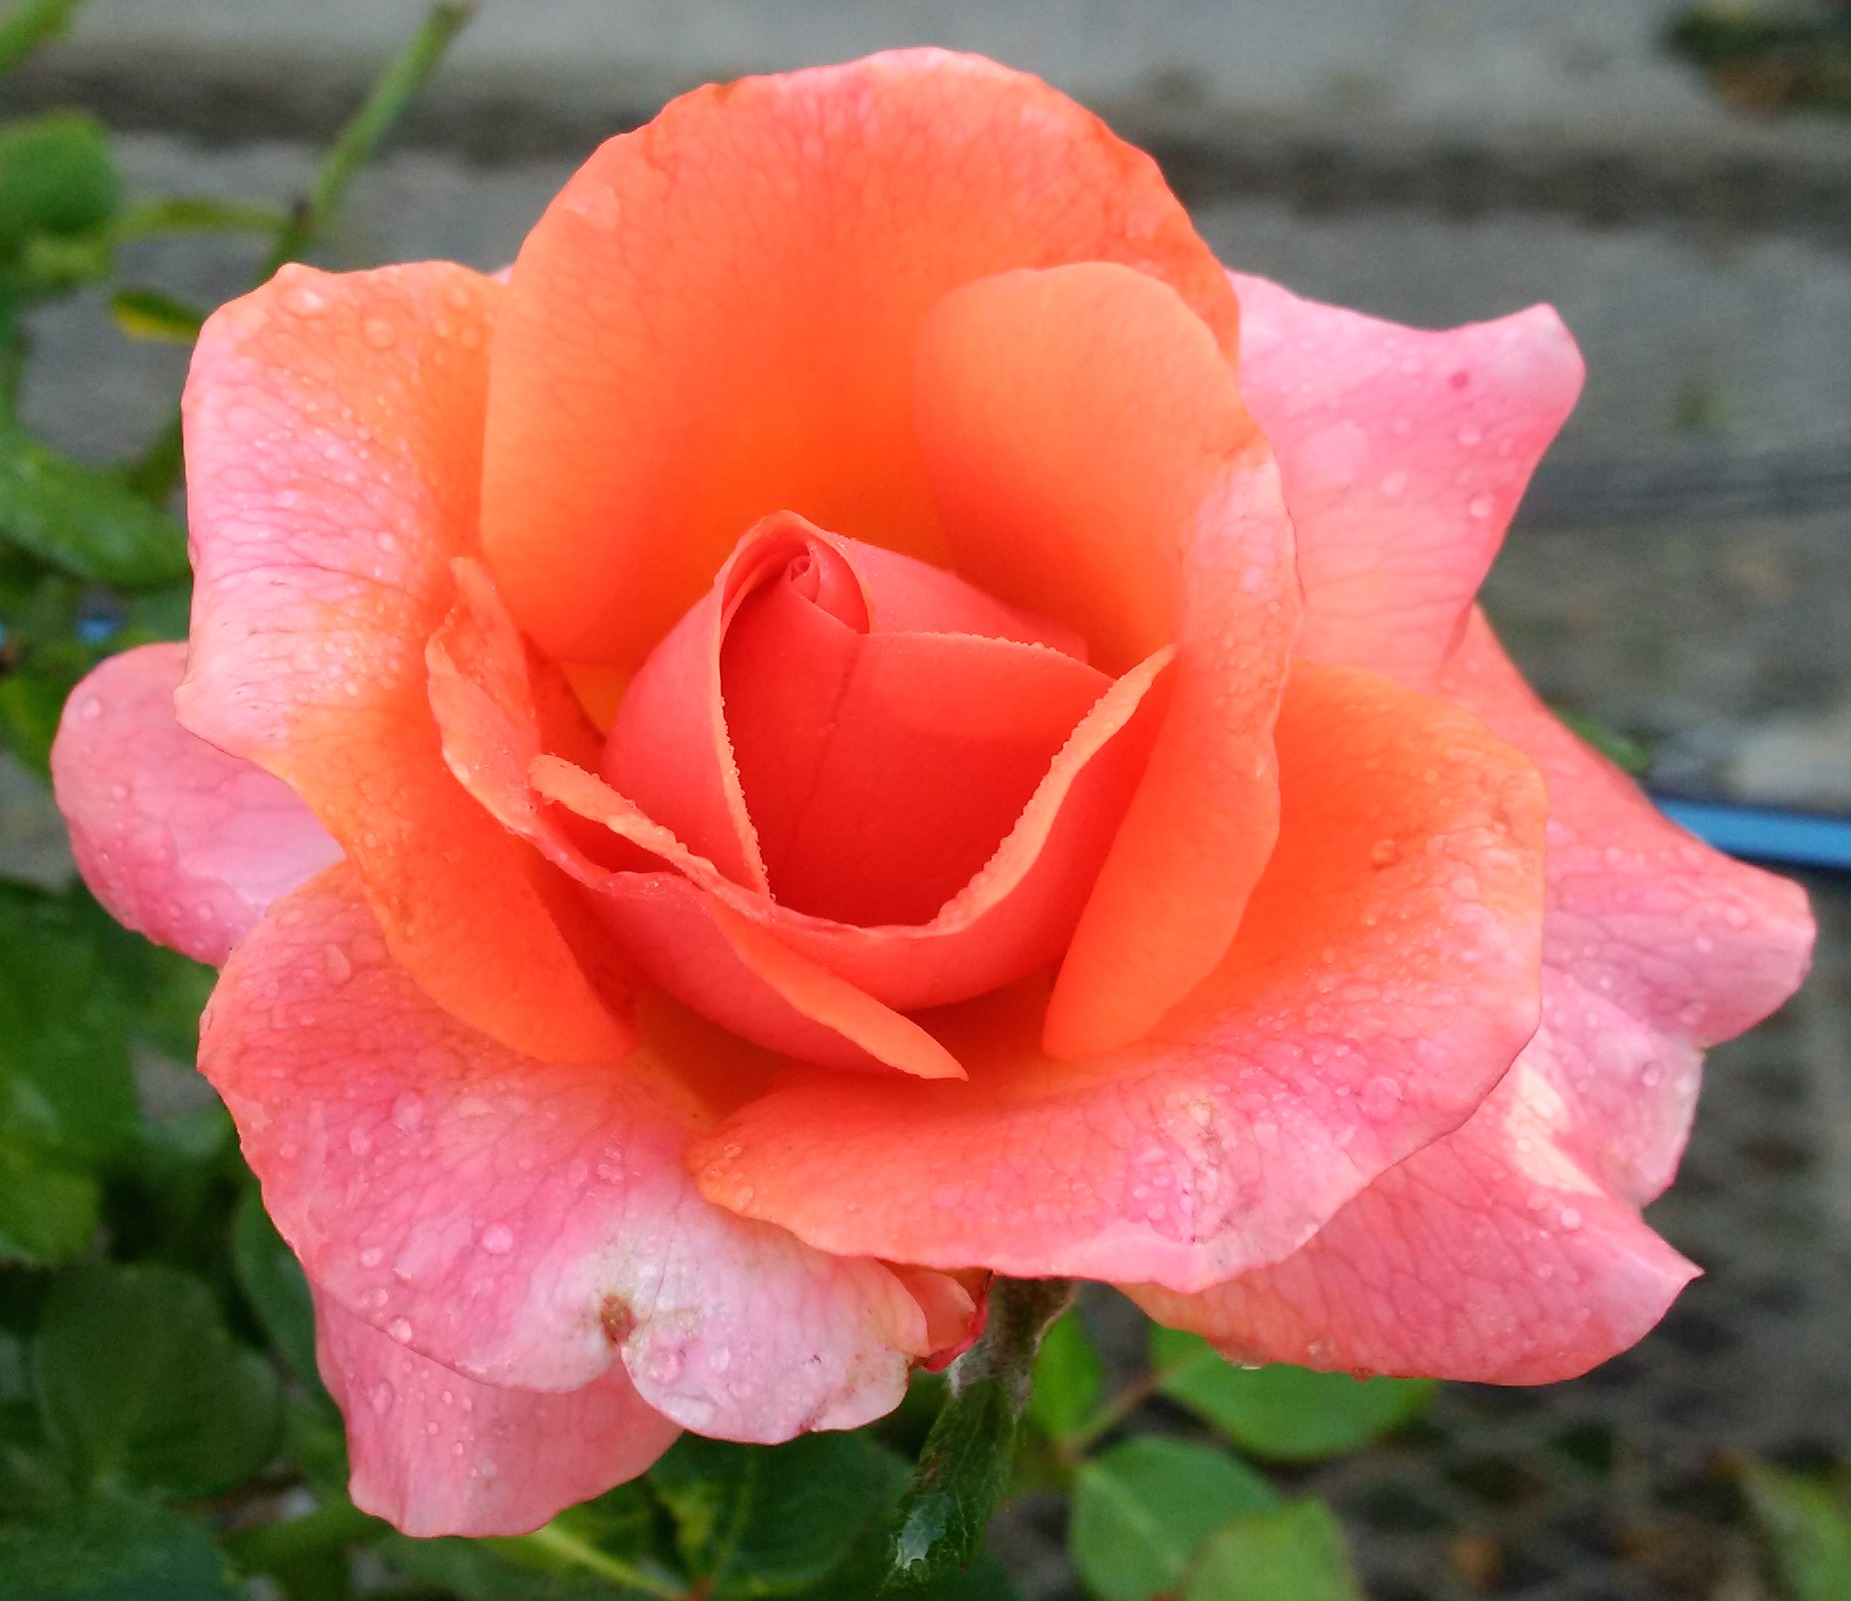 Free Photo Orange Rose Pedals Plant Pretty Free Download Jooinn